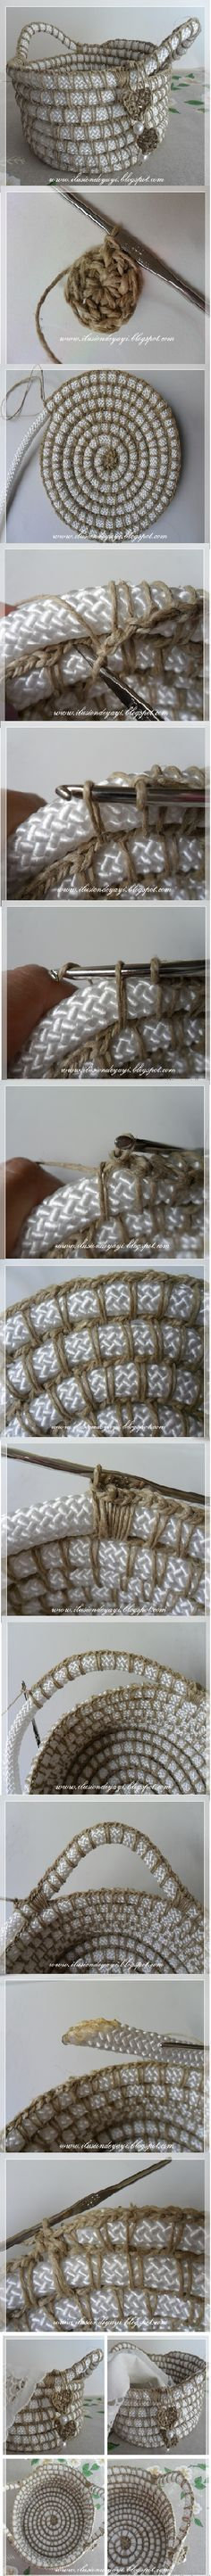 Crochet and Rope Basket - Tutorial ❥ 4U // hf ~This could also make an awesome rug :)